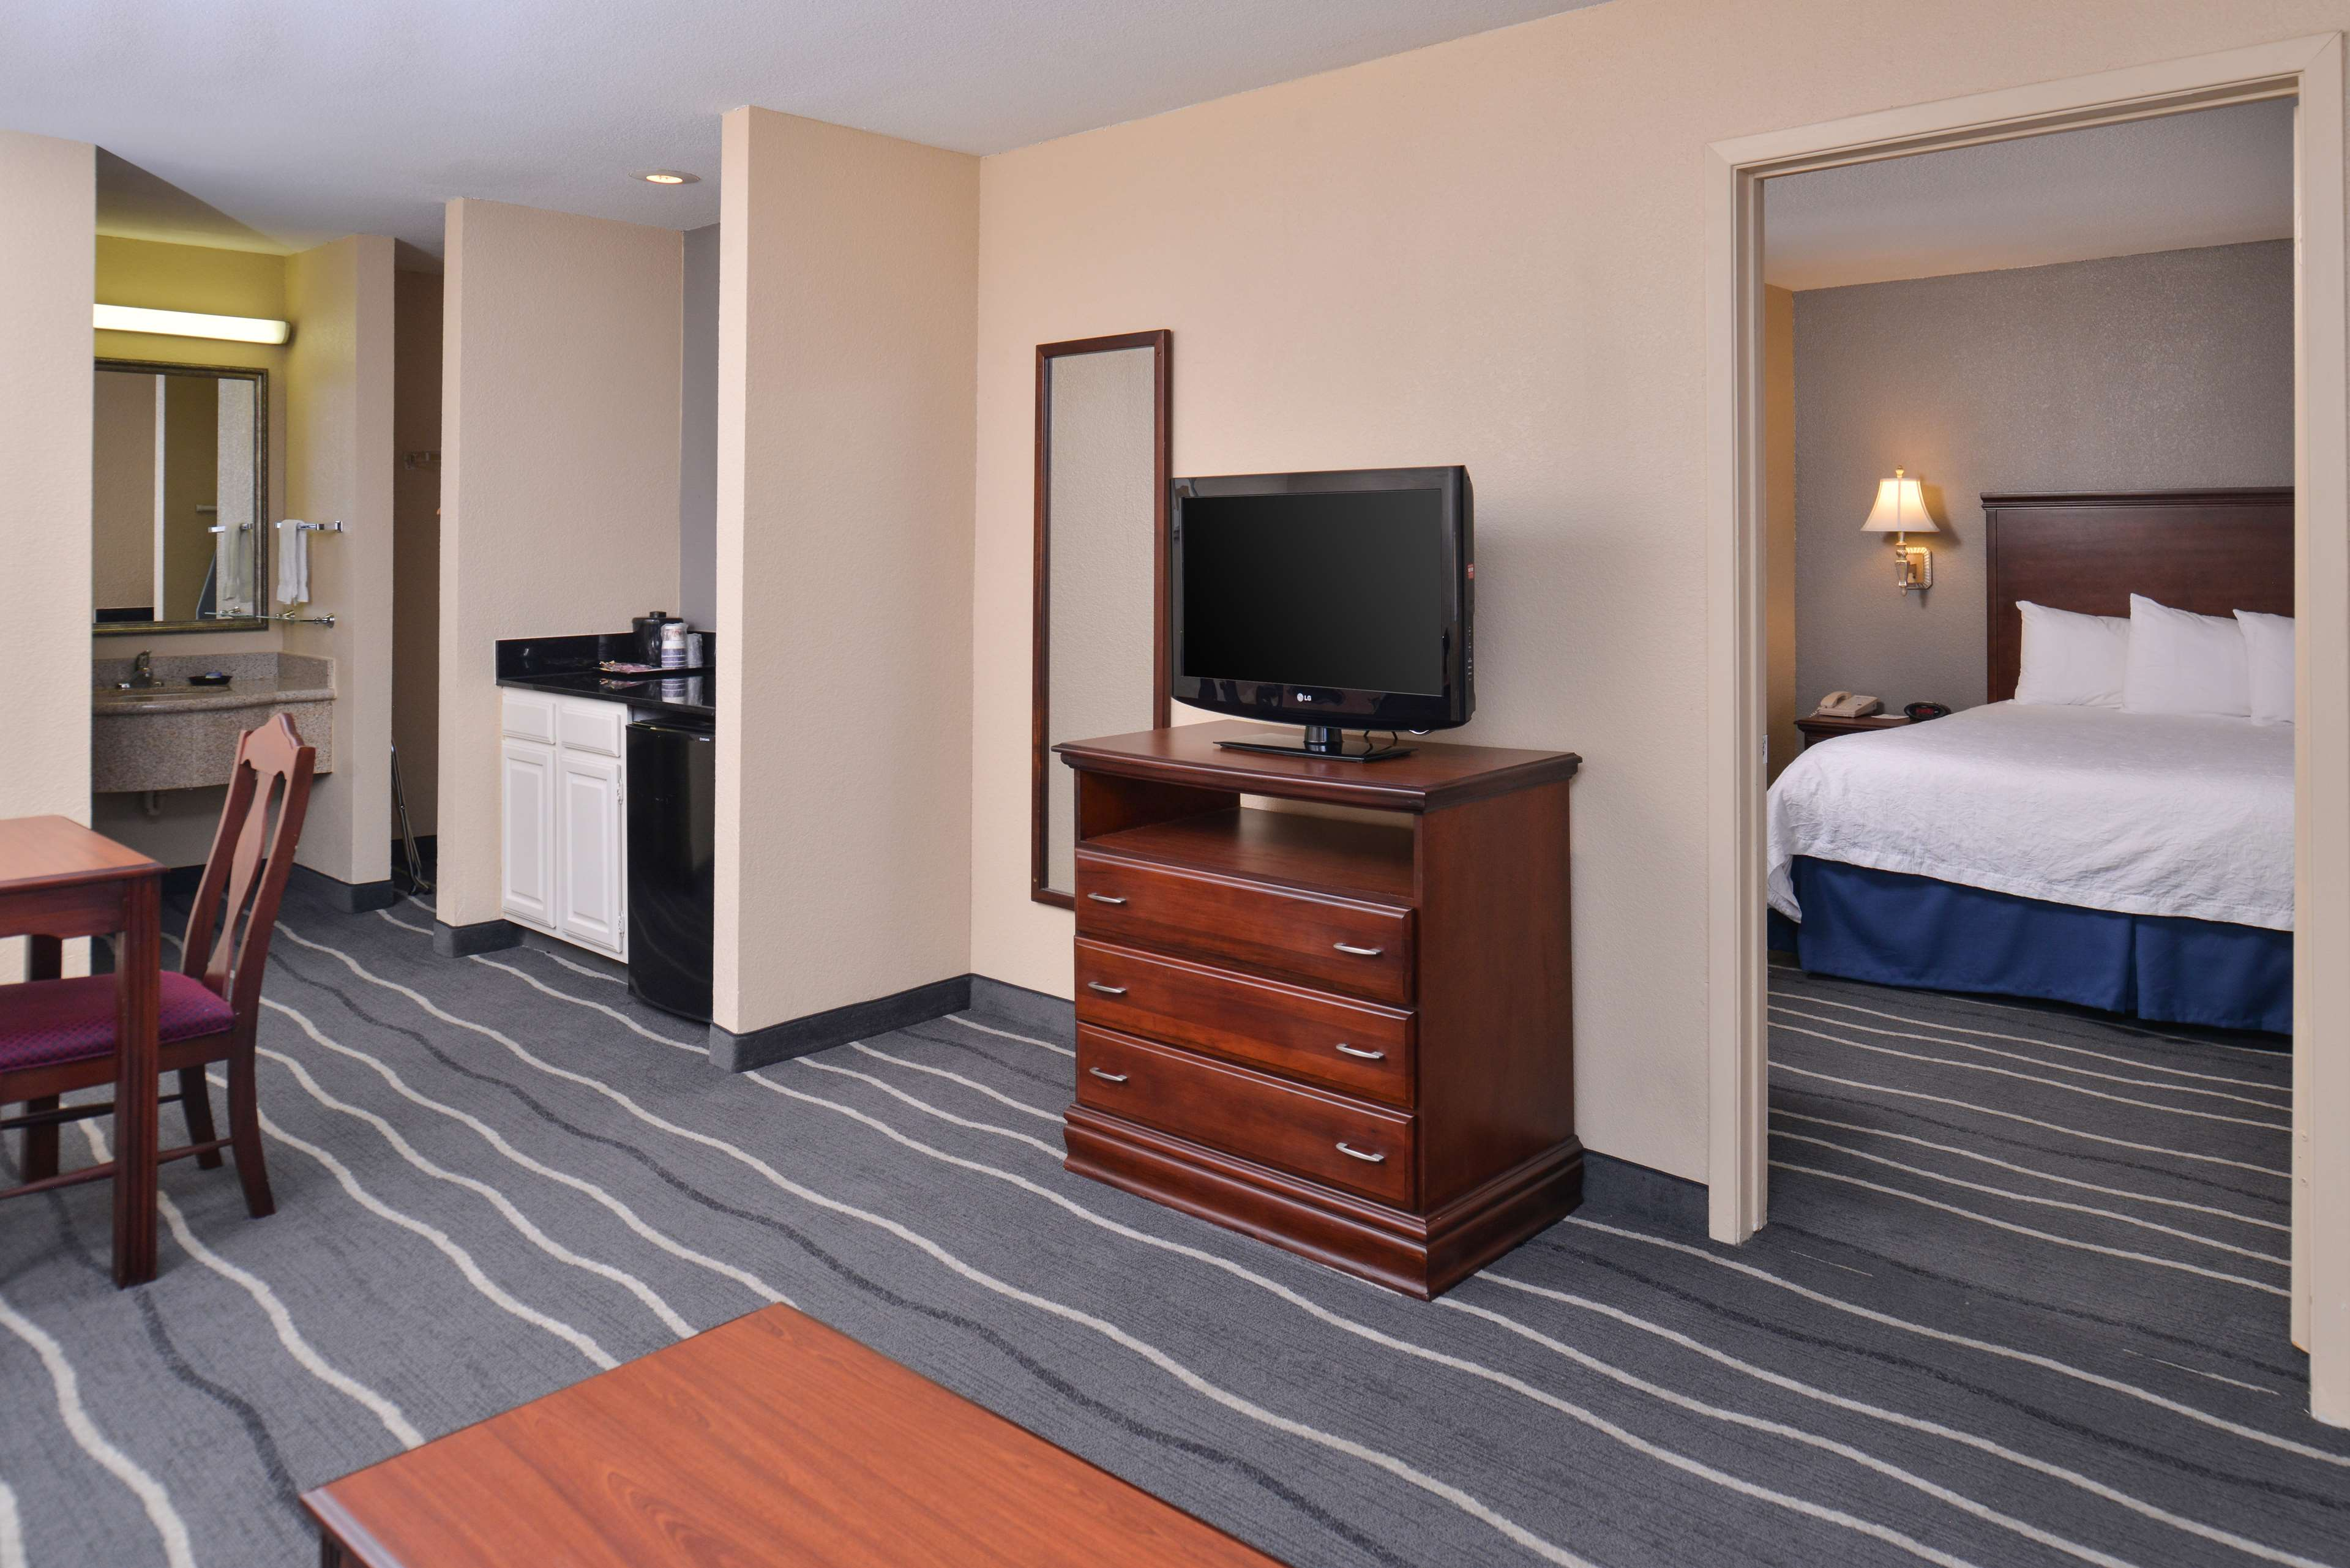 Best Western Irving Inn & Suites at DFW Airport image 20